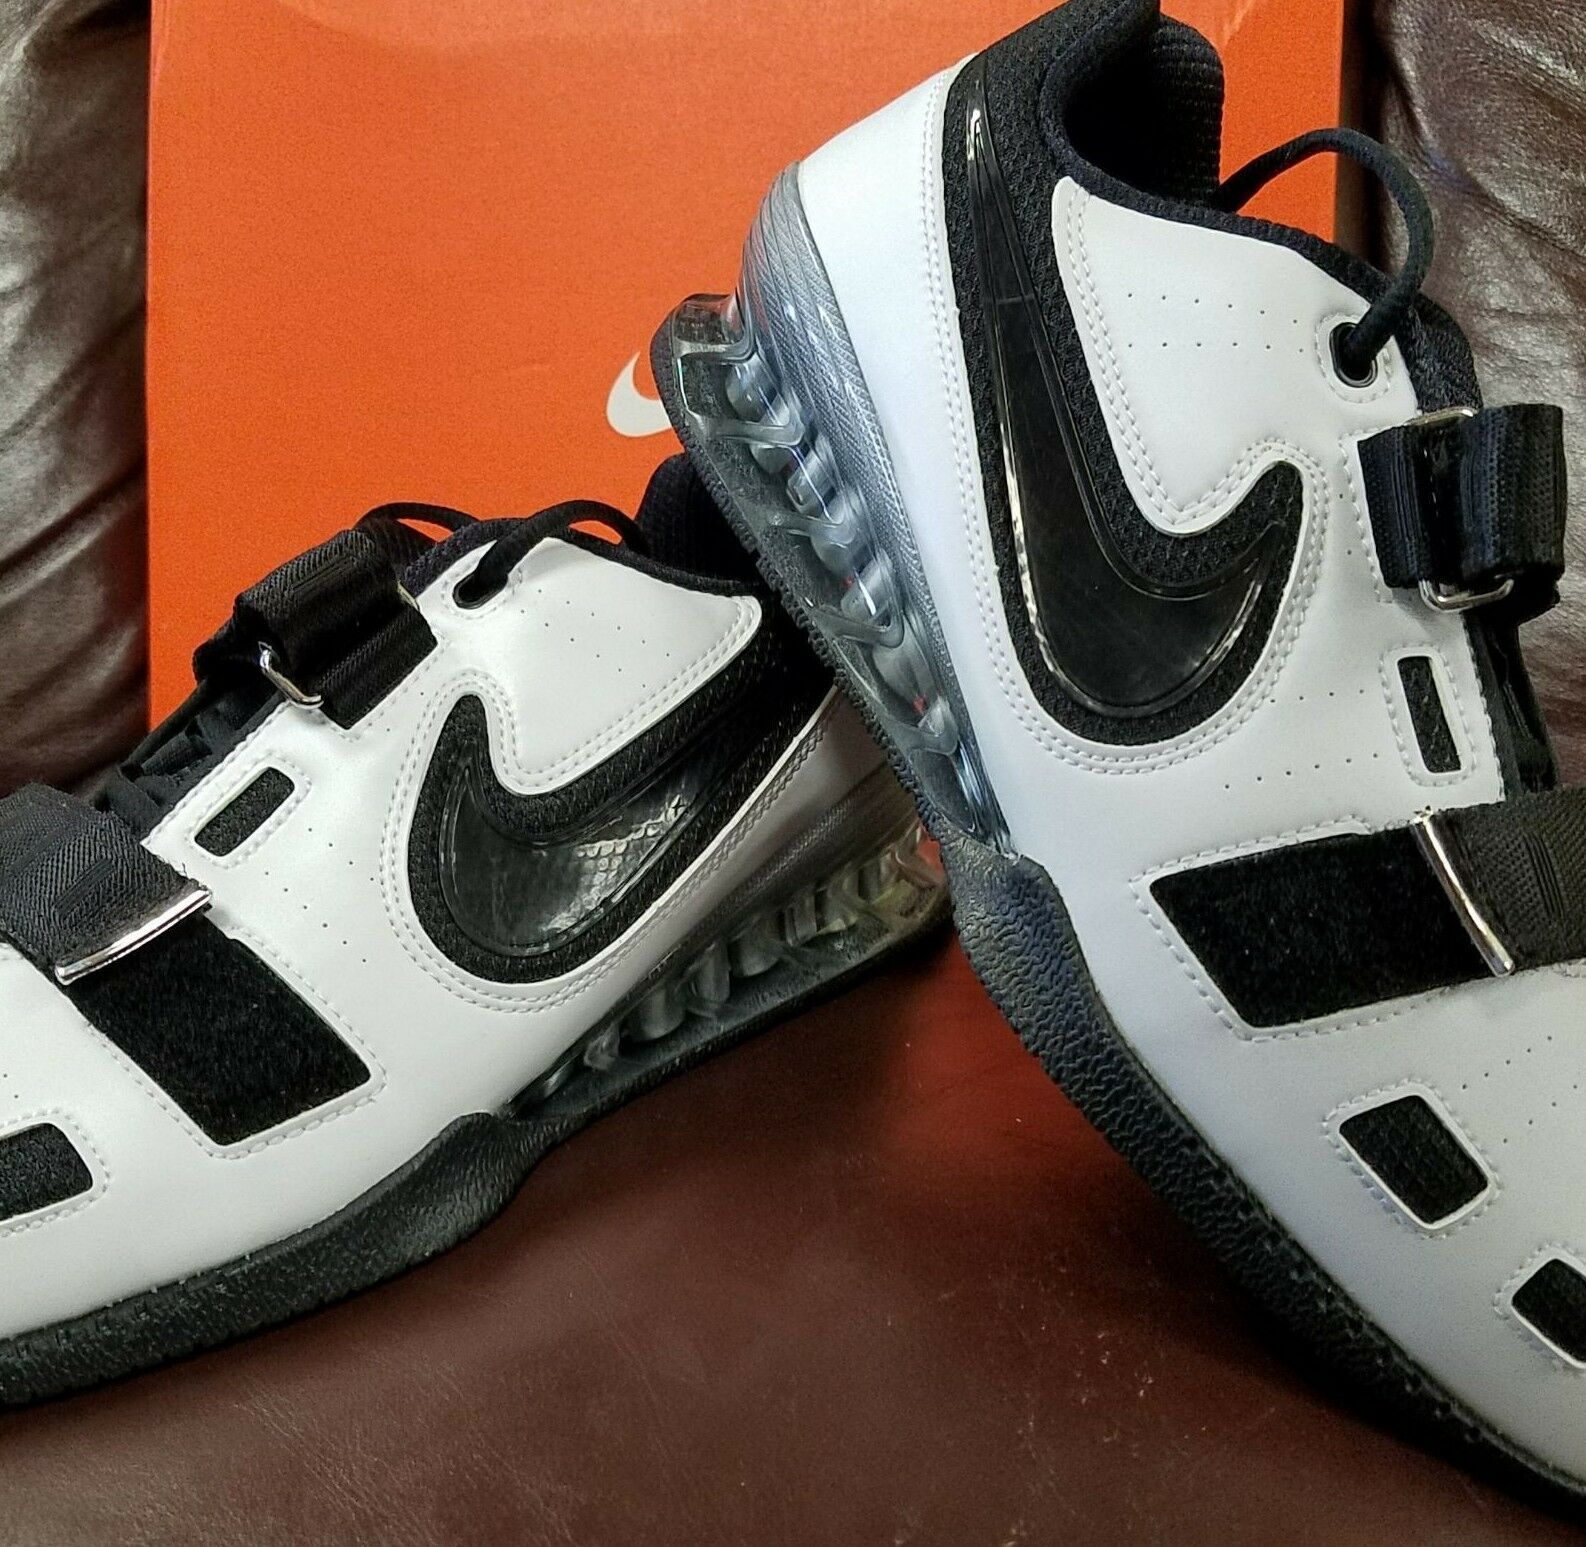 BRAND NEW IN BOX NIKE ROMALEOS 2 MENS WEIGHTLIFTING SHOES WHITE BLACK SWOOSH 101